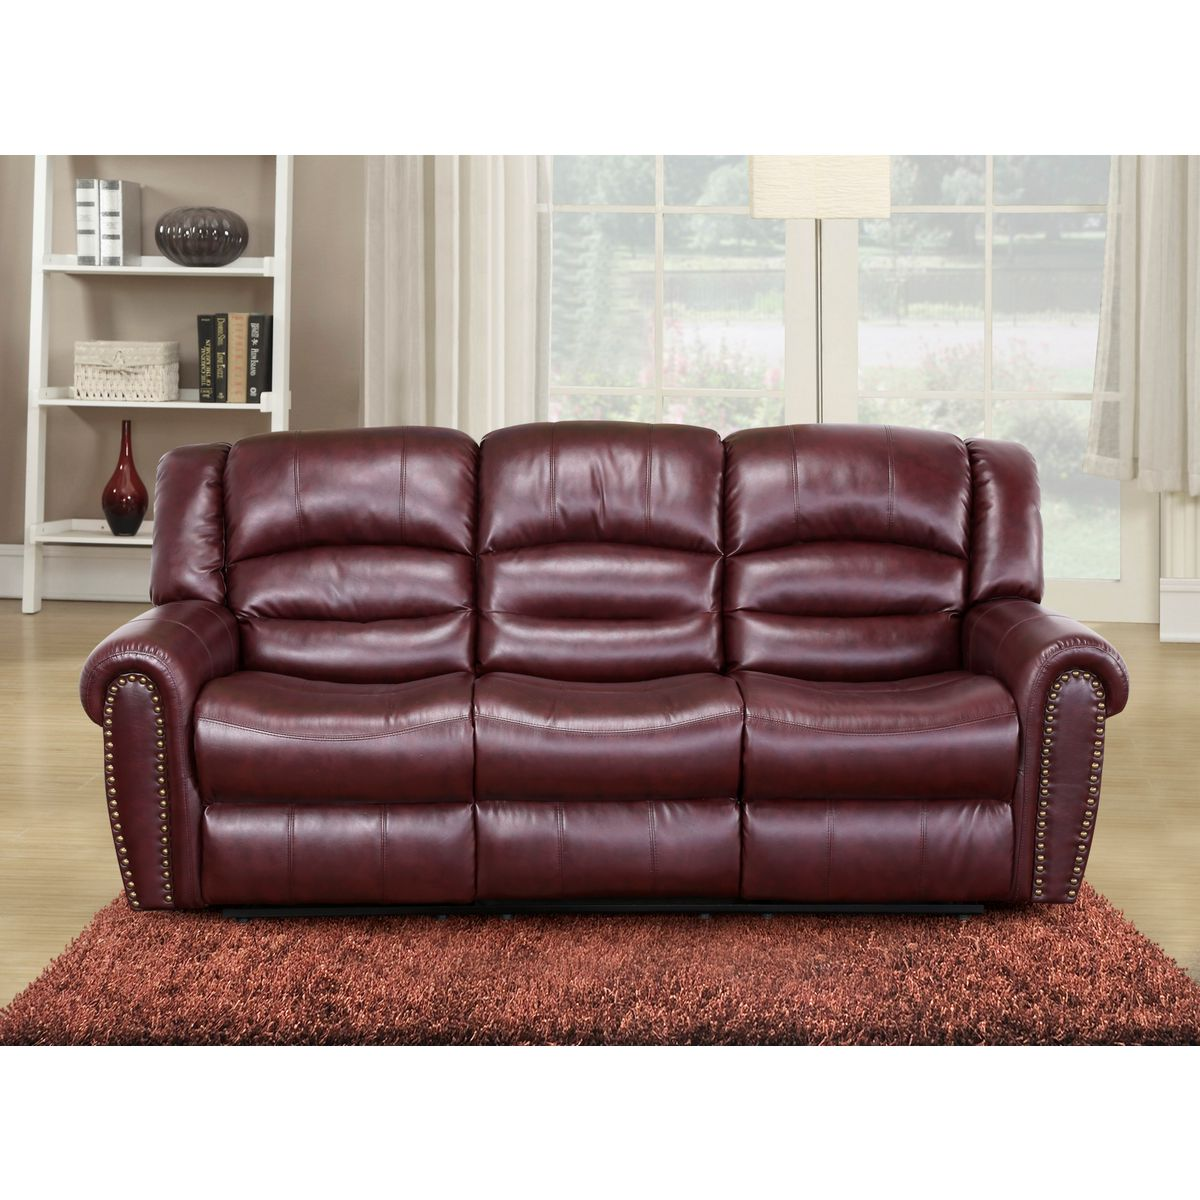 living room ideas with burgundy leather sofa katisha platinum 5 piece sectional left chaise chelsea 54 bank